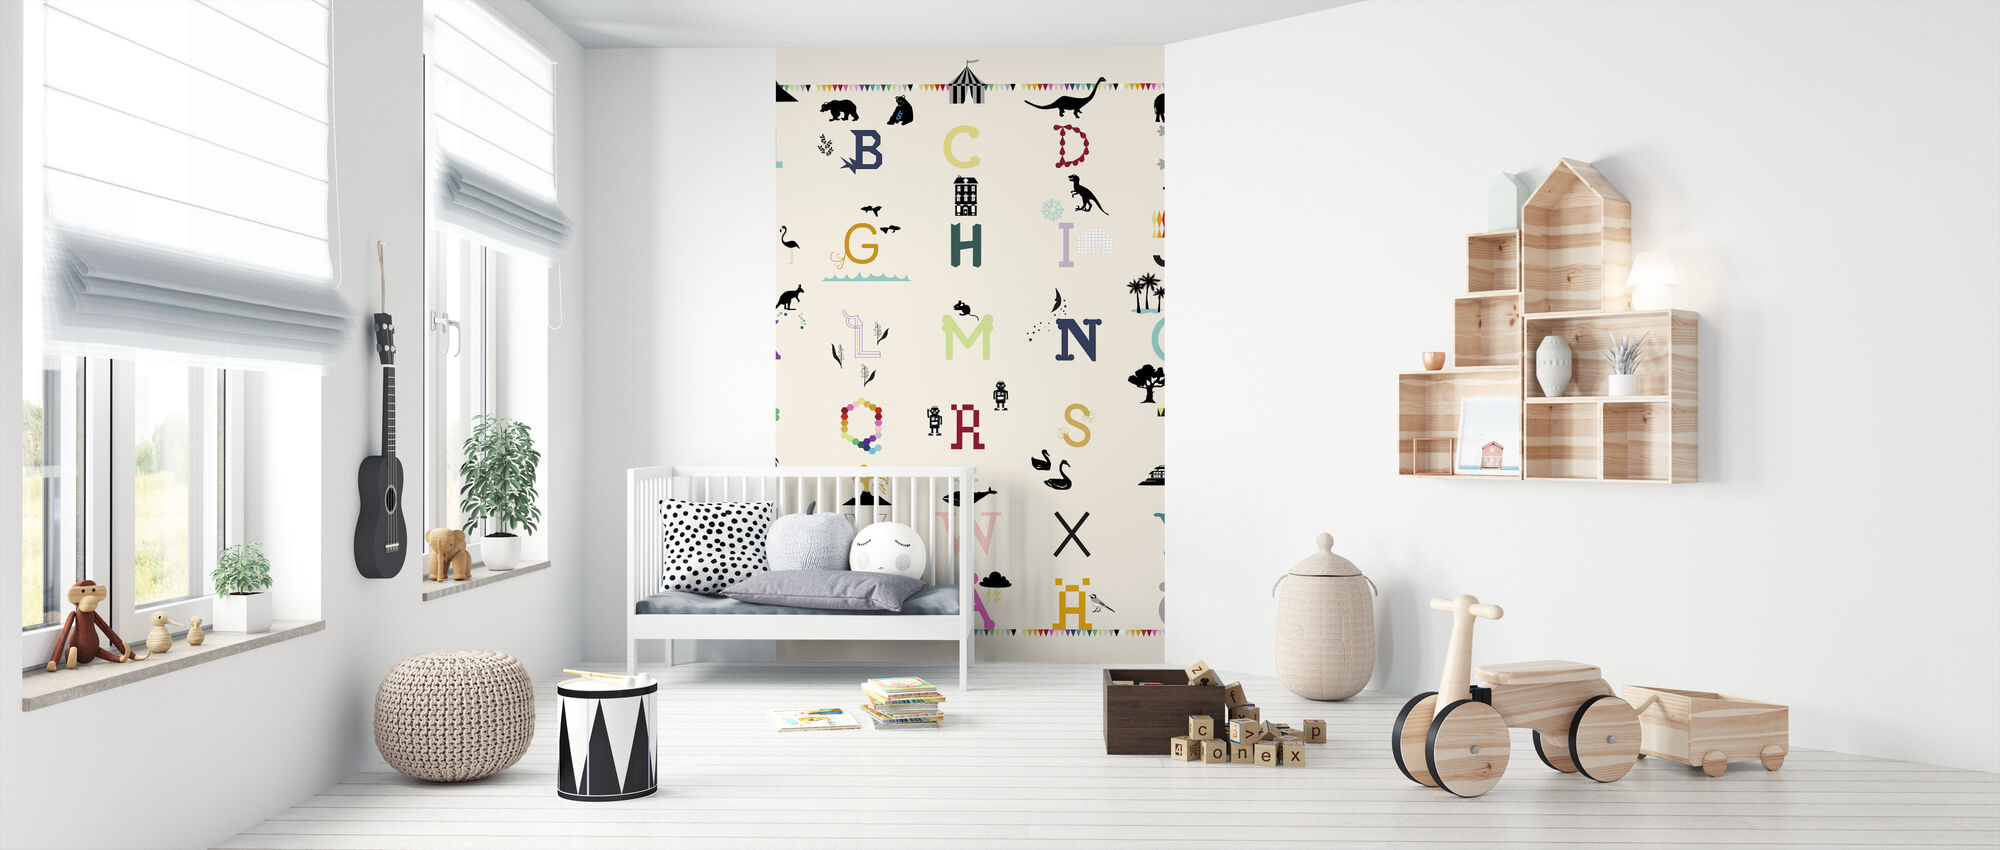 ABC wall - Swedish - Wallpaper - Nursery